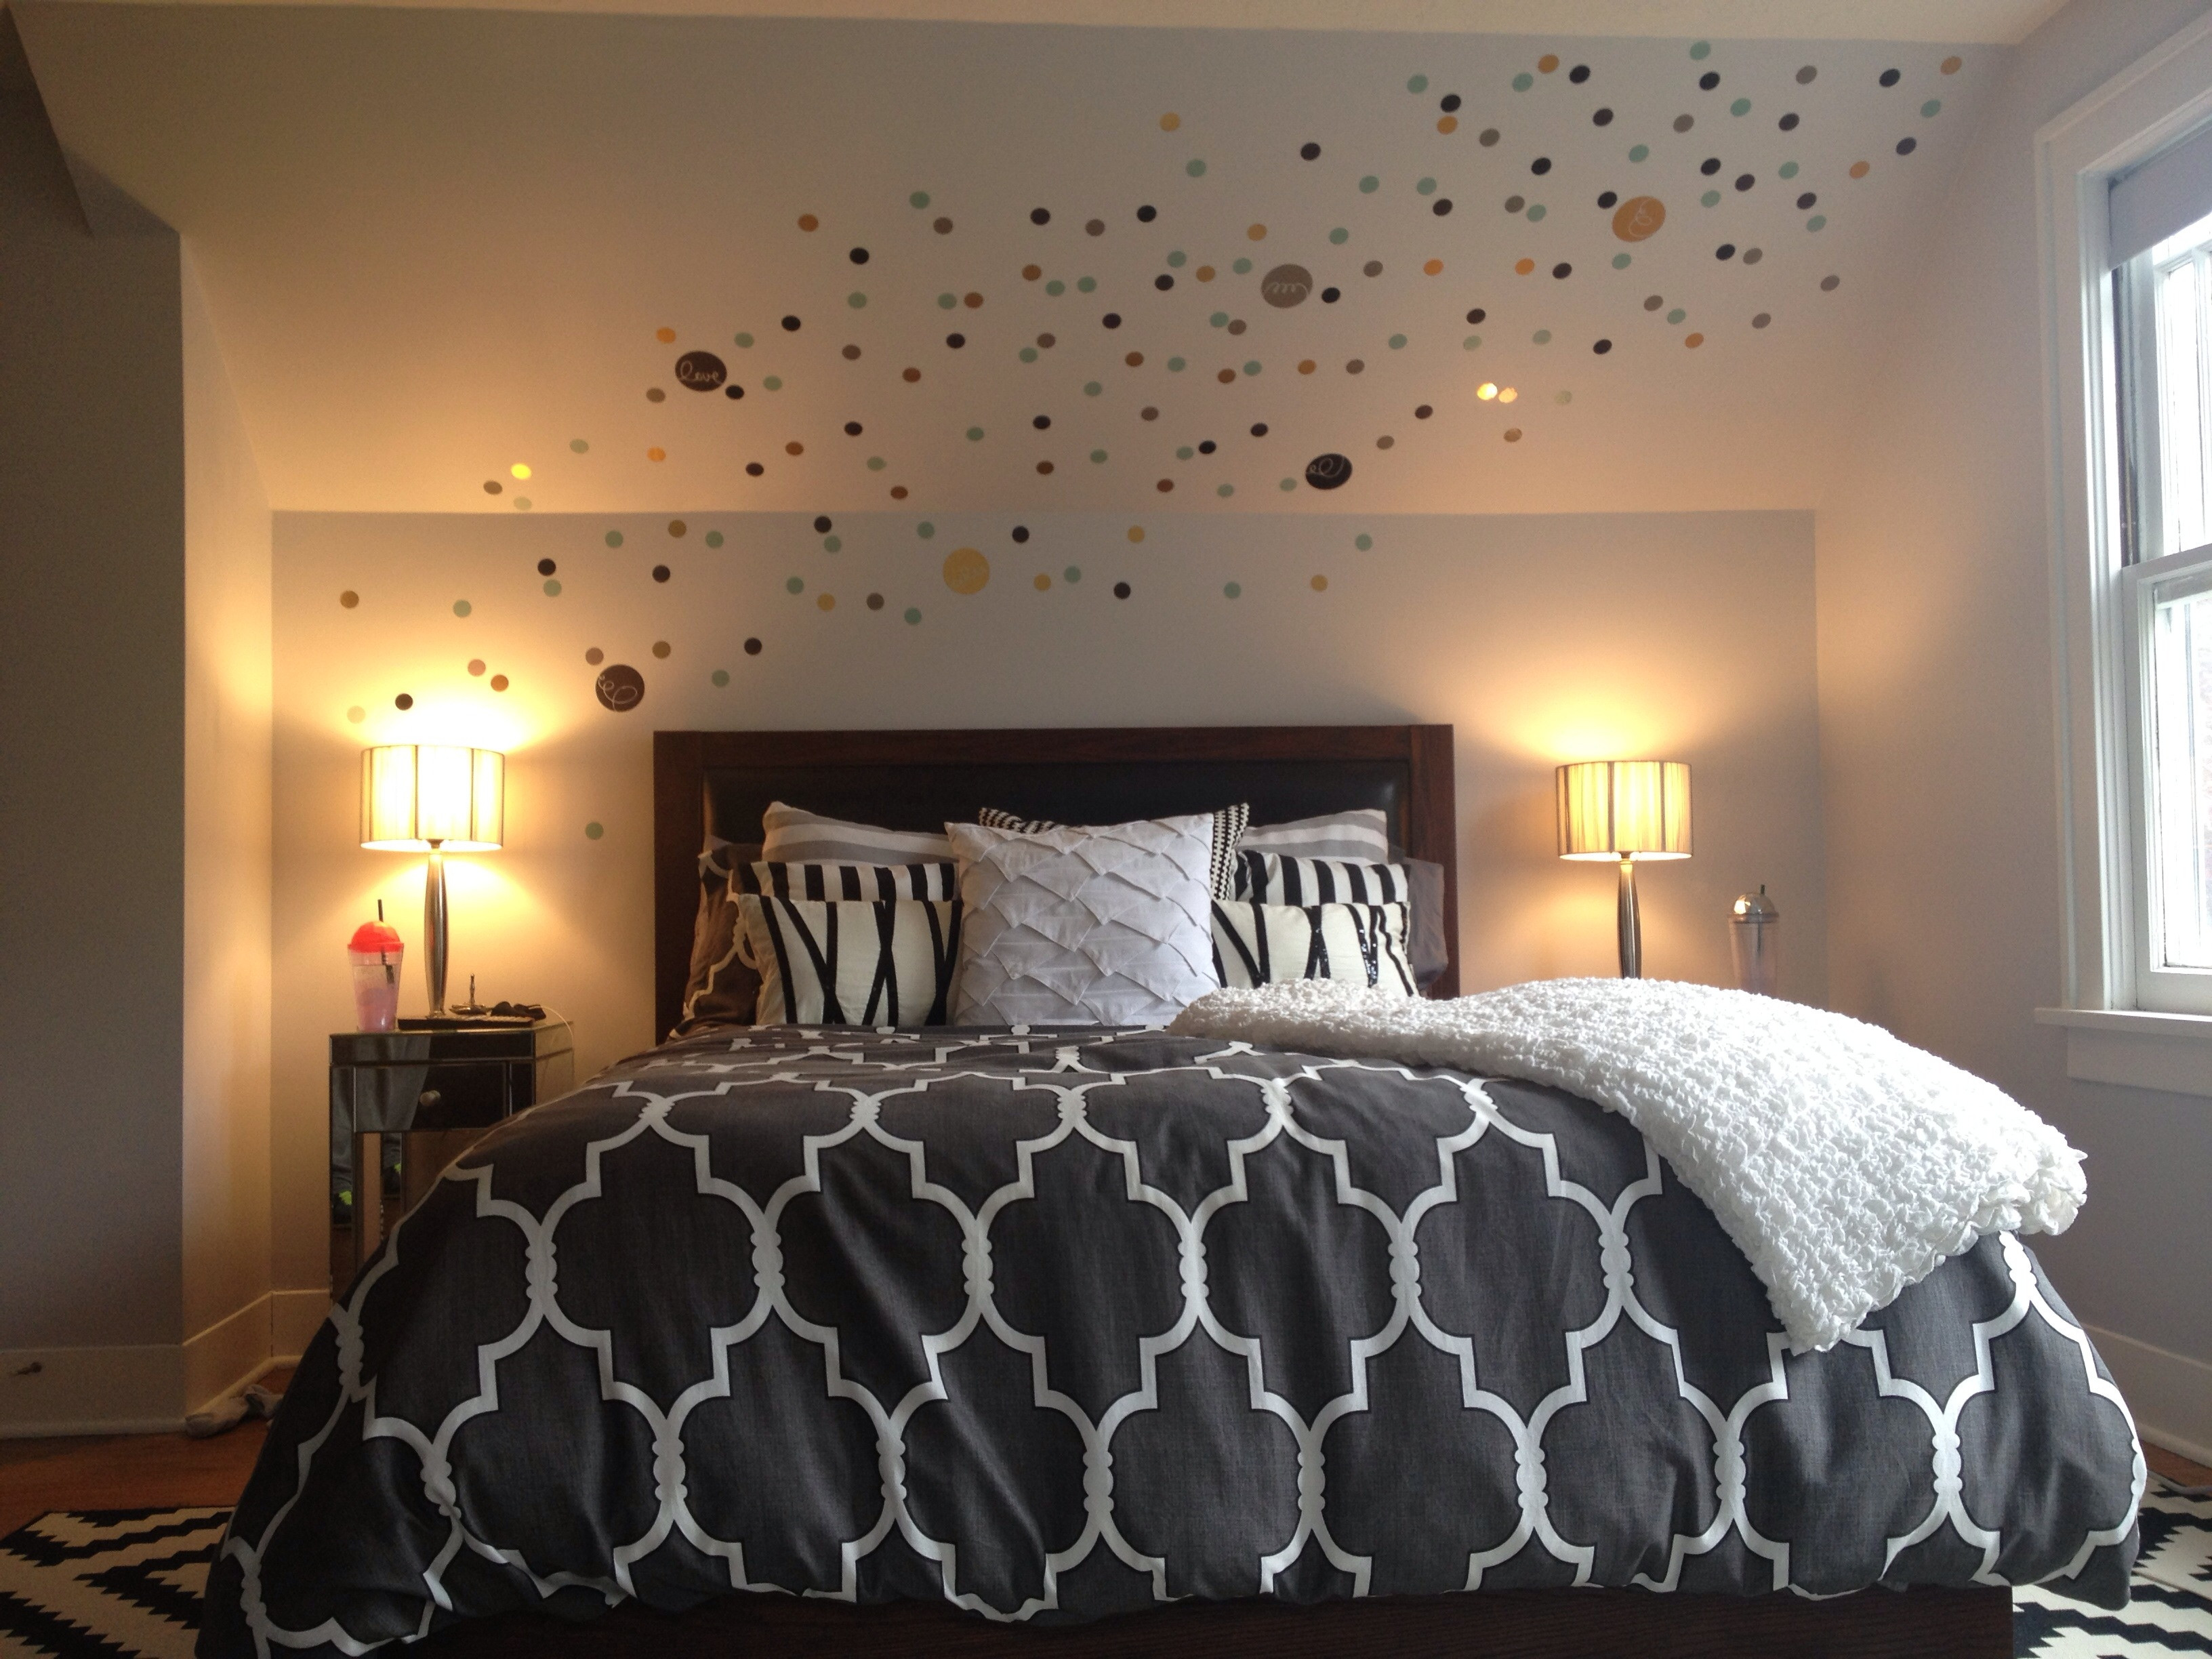 Best ideas about Wall Art For Bedroom . Save or Pin Wall Art Ideas For Bedroom Pinterest Now.